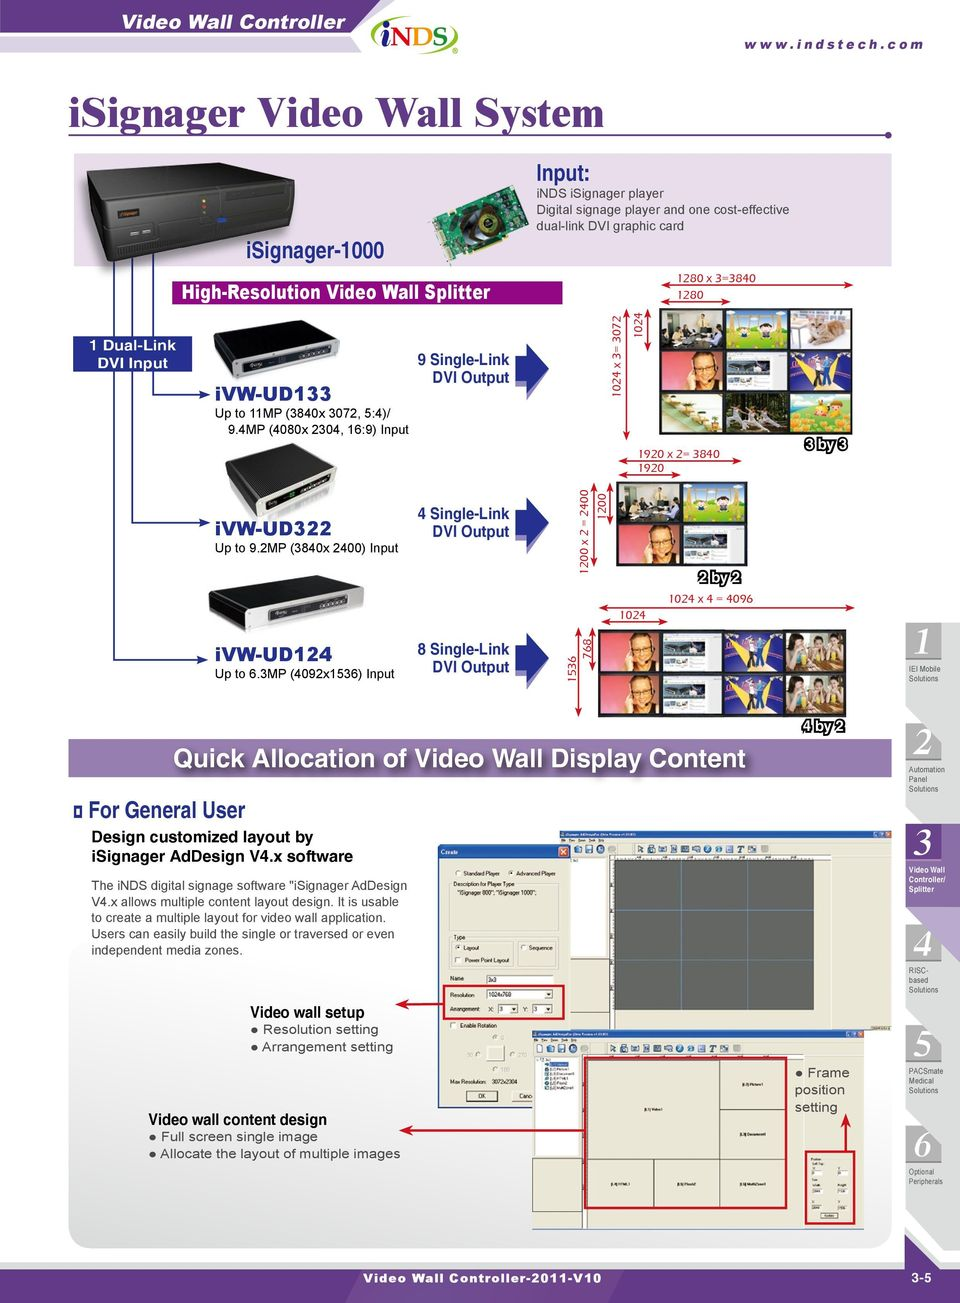 "mp (09x) Single-Link DVI 0 For General User Quick Allocation of Display Content Design customized layout by isignager AdDesign V.x software The inds digital signage software ""isignager AdDesign V."